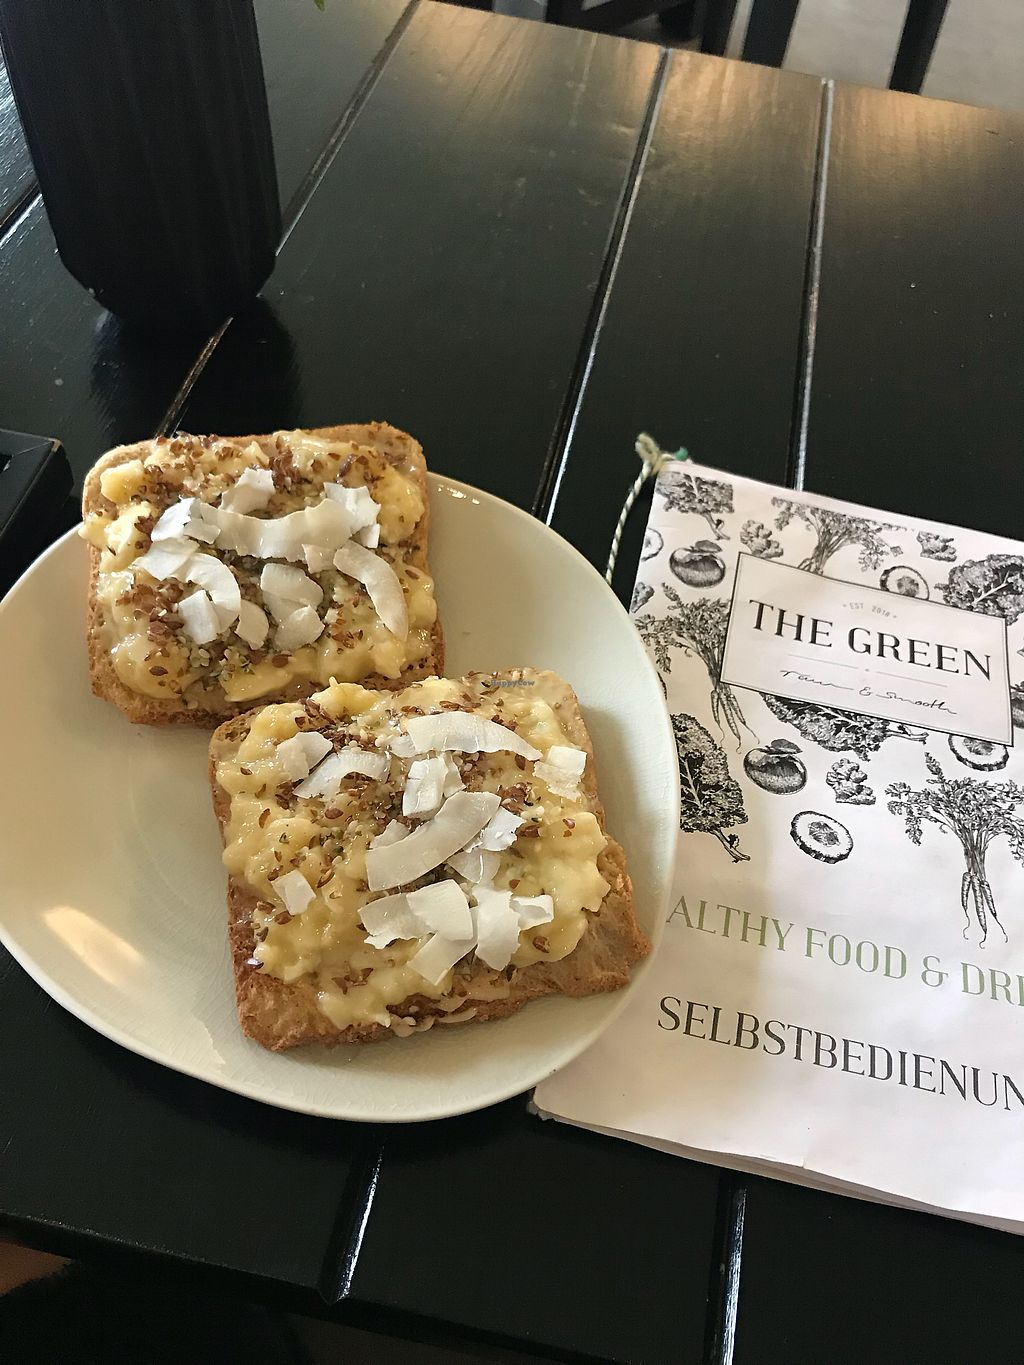 """Photo of THE GREEN  by <a href=""""/members/profile/KatyWilliams"""">KatyWilliams</a> <br/>Tasty banana toast  <br/> November 20, 2017  - <a href='/contact/abuse/image/91039/327453'>Report</a>"""